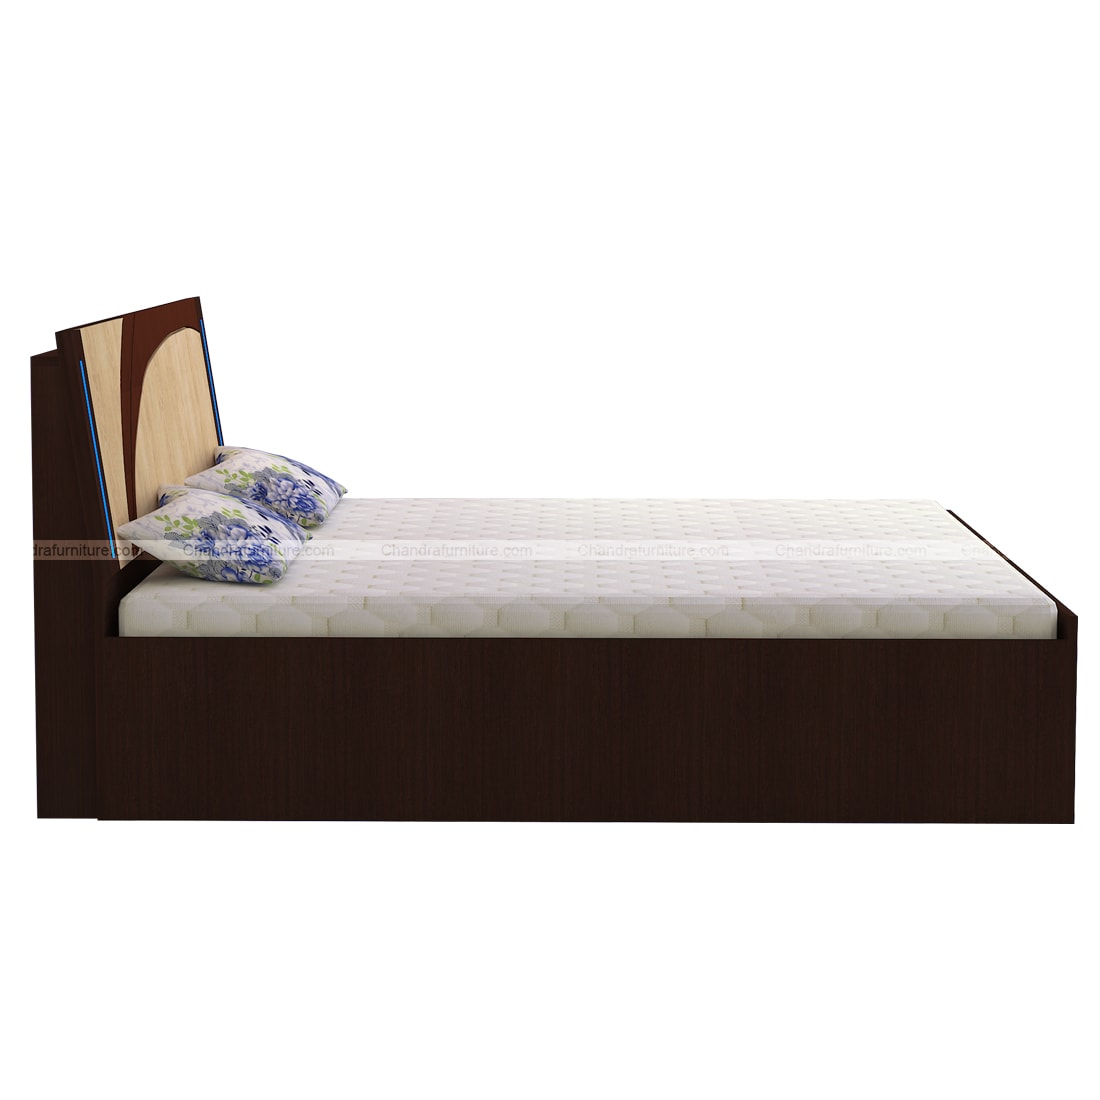 Chandra Furniture King Size Bed - Starlight (Blue Night Light In Bed)